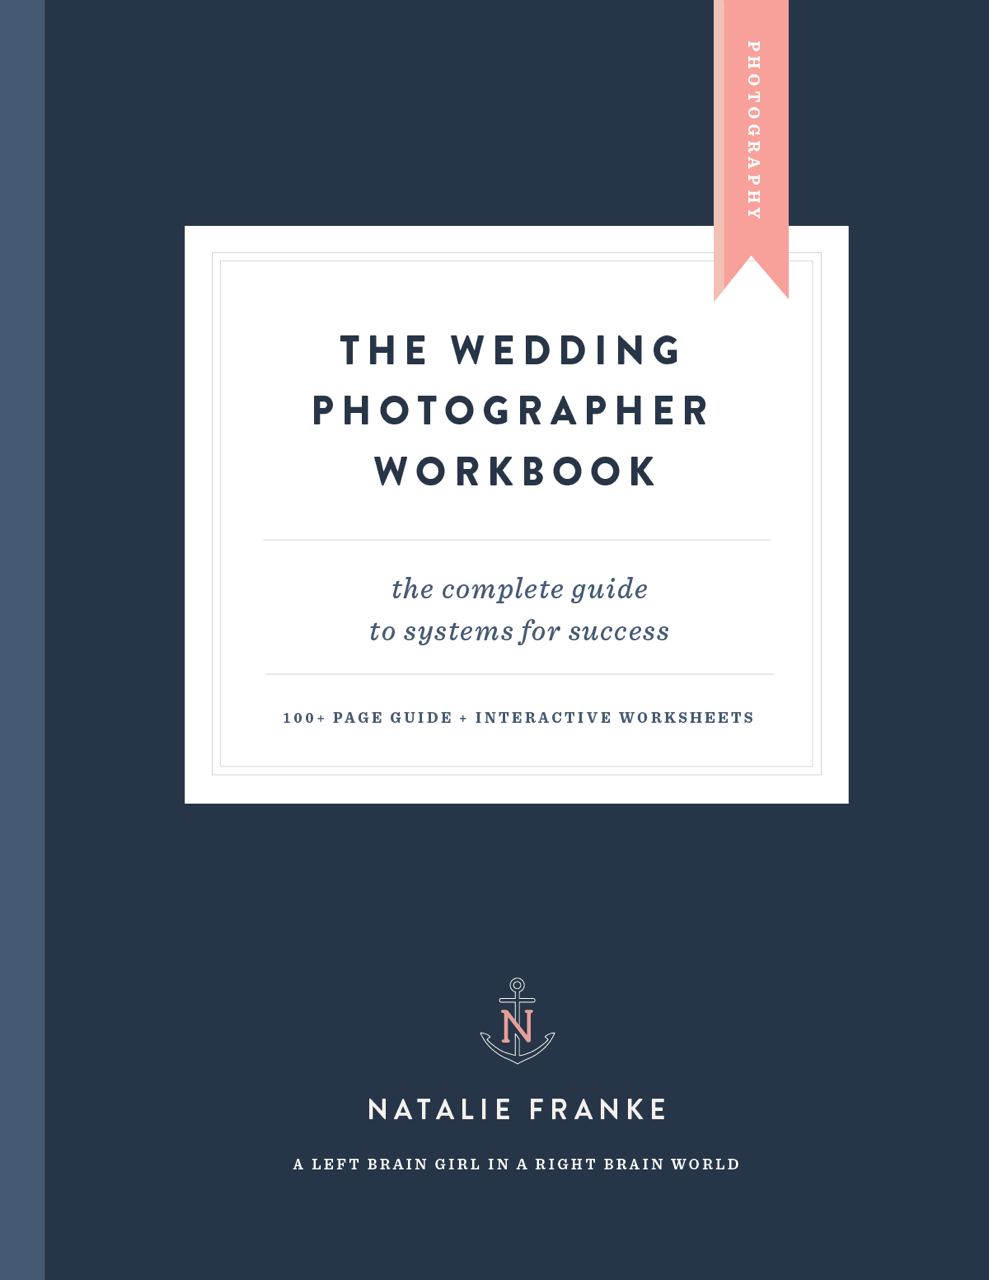 The Wedding Photographer Workbook